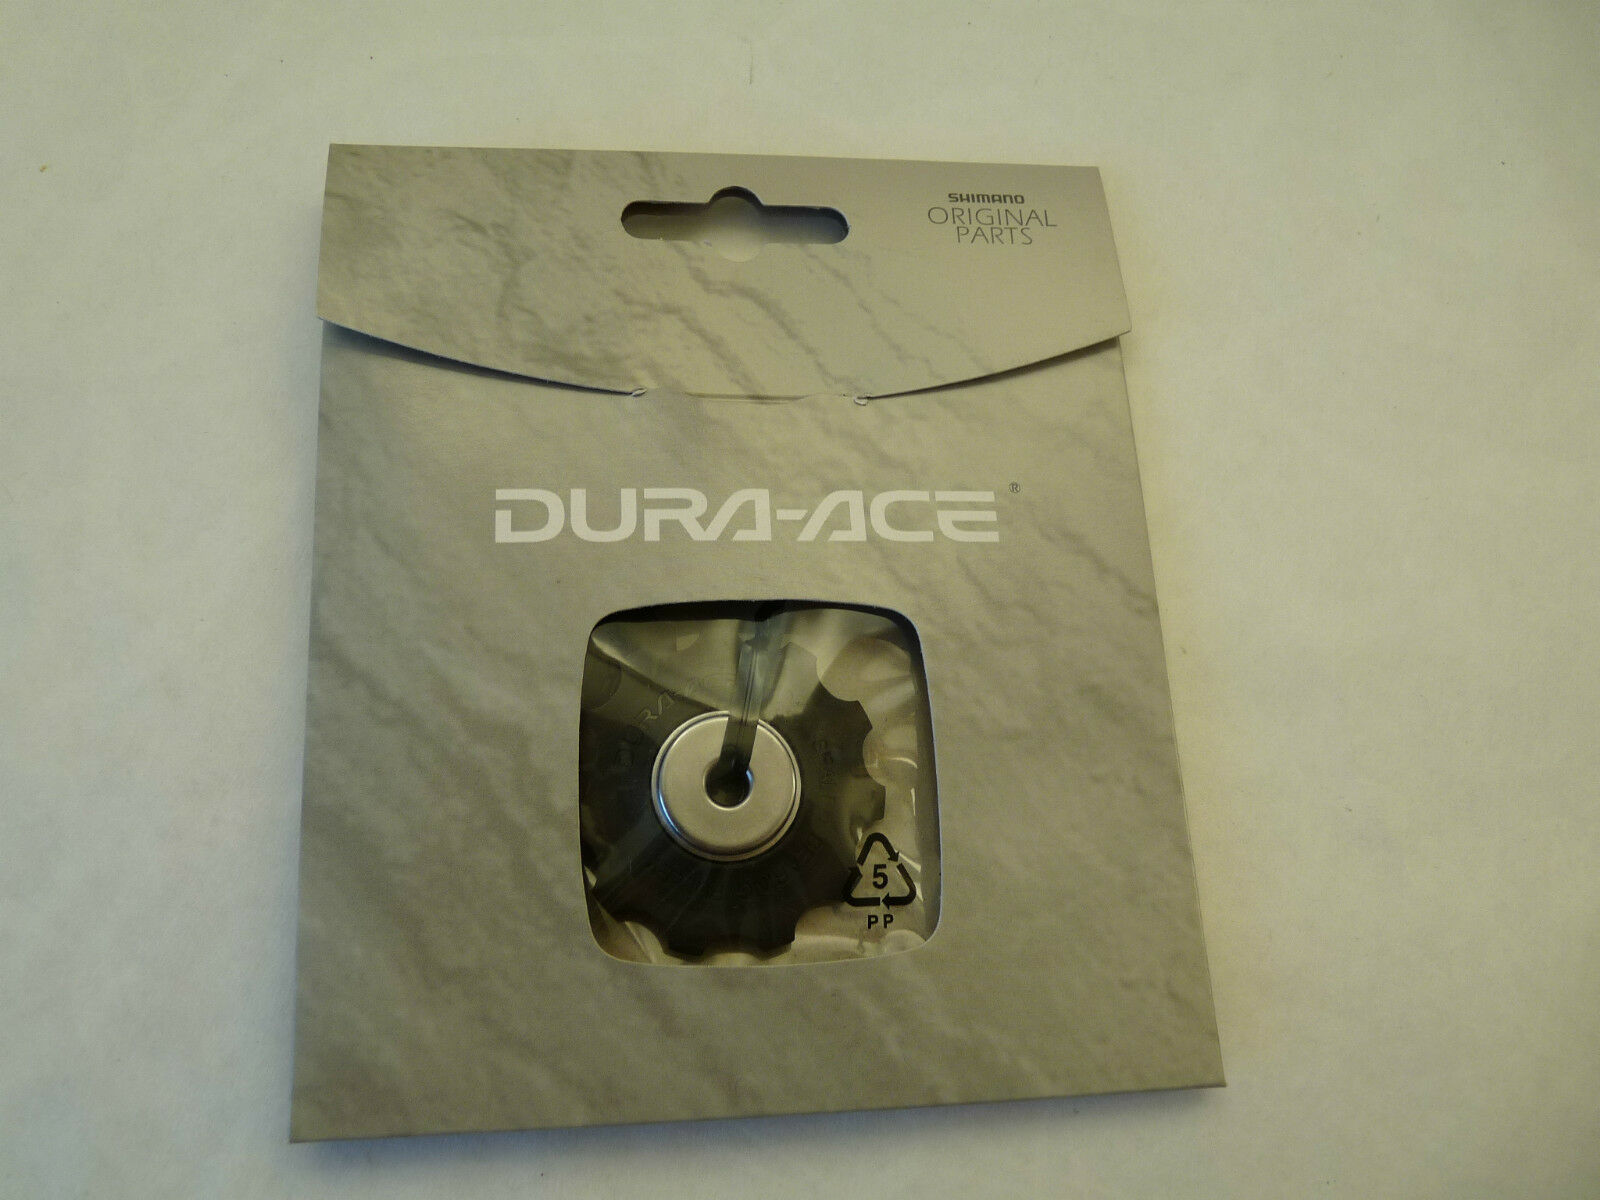 Shimano Dura Ace Rear Derailleur pulleys 7700 7800 Fit 9  & 10 speed 11T NOS  promotional items